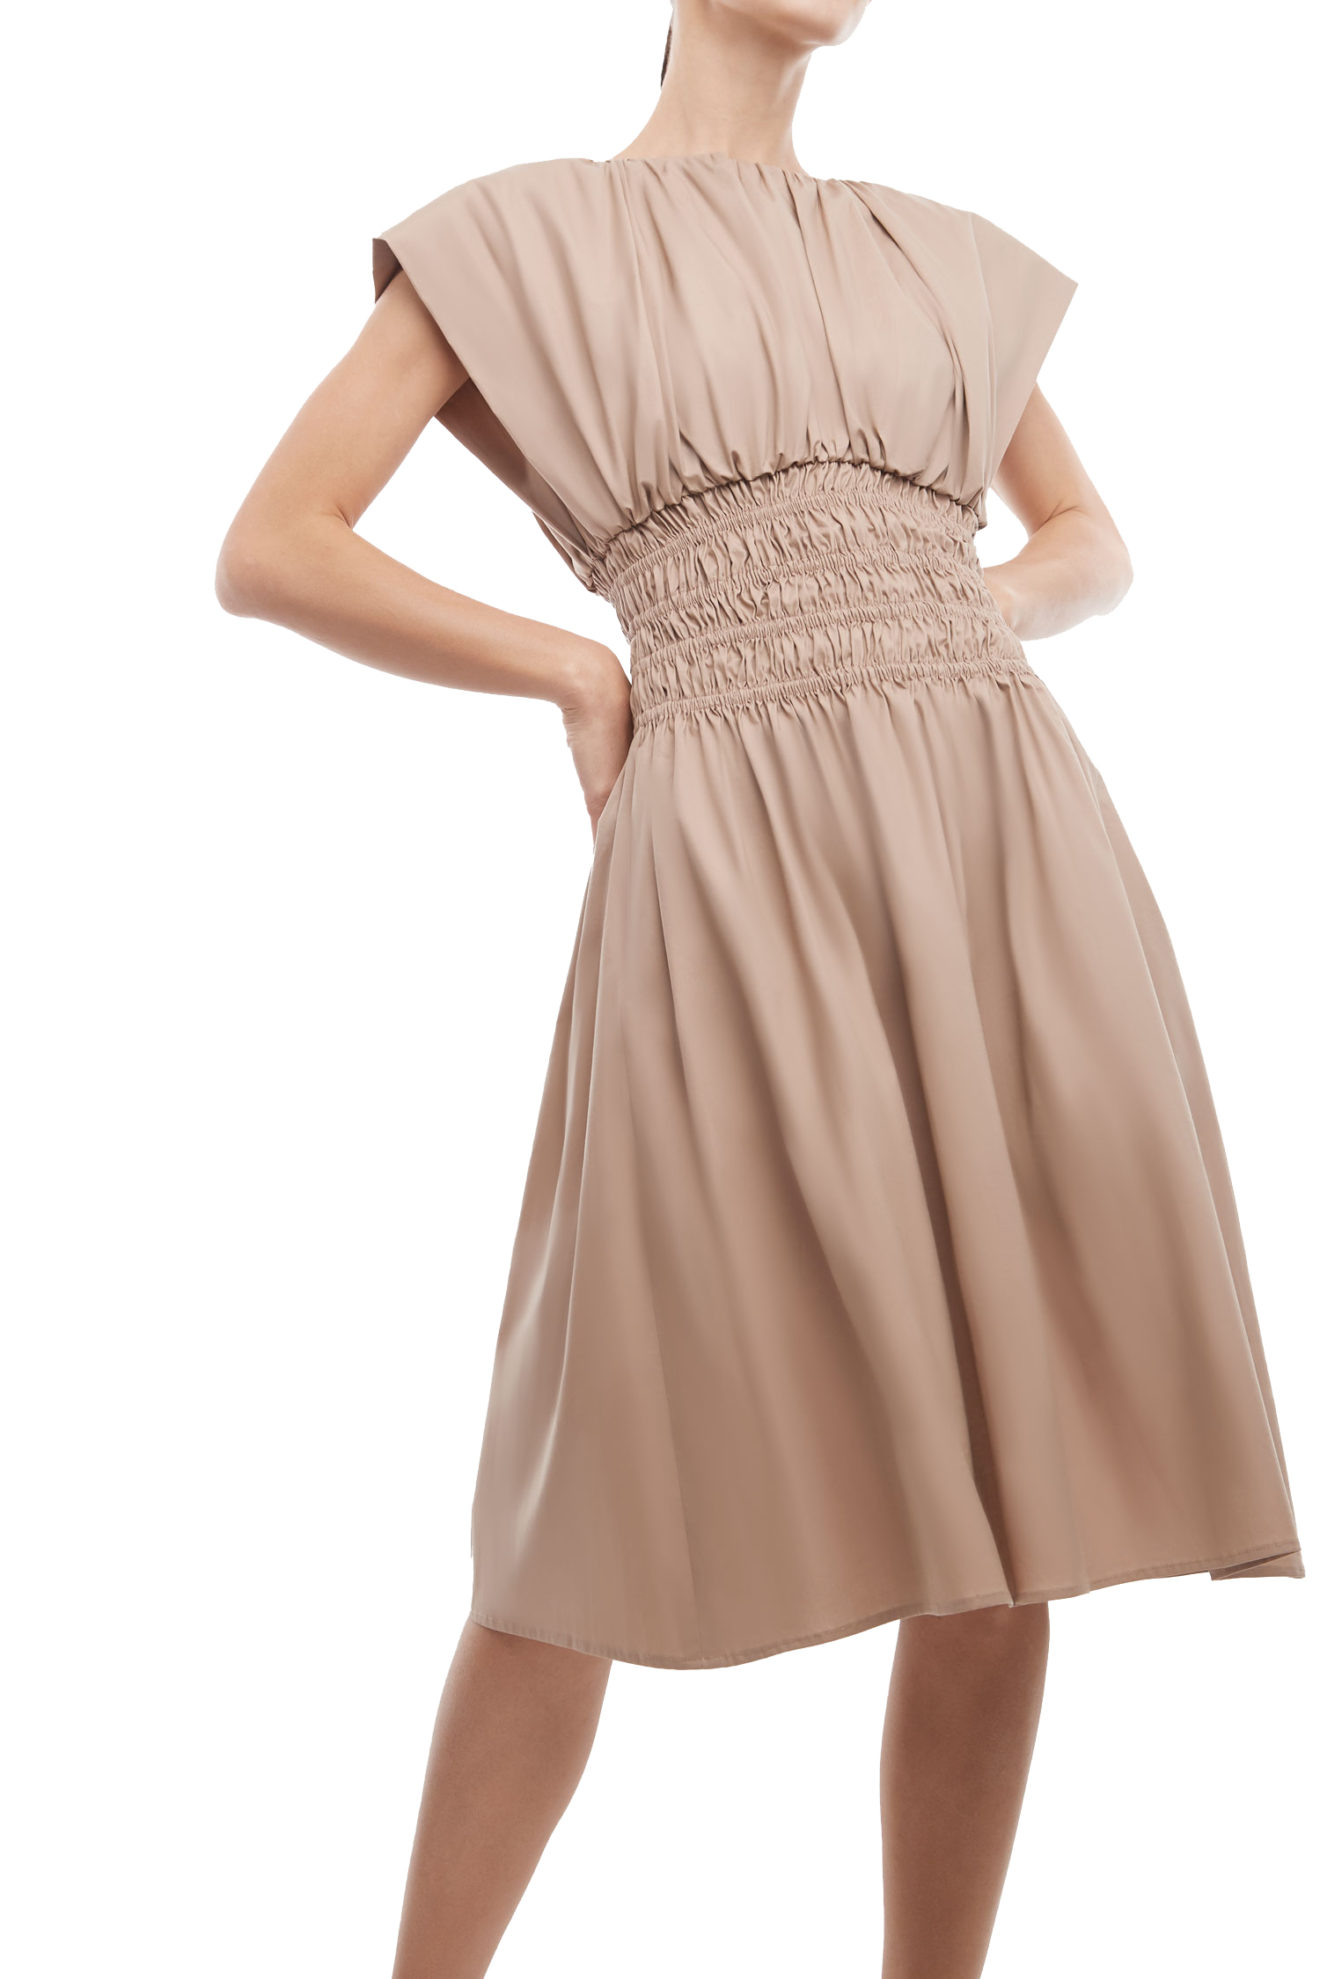 Como Dress in Nude - Atelier Patty Ang